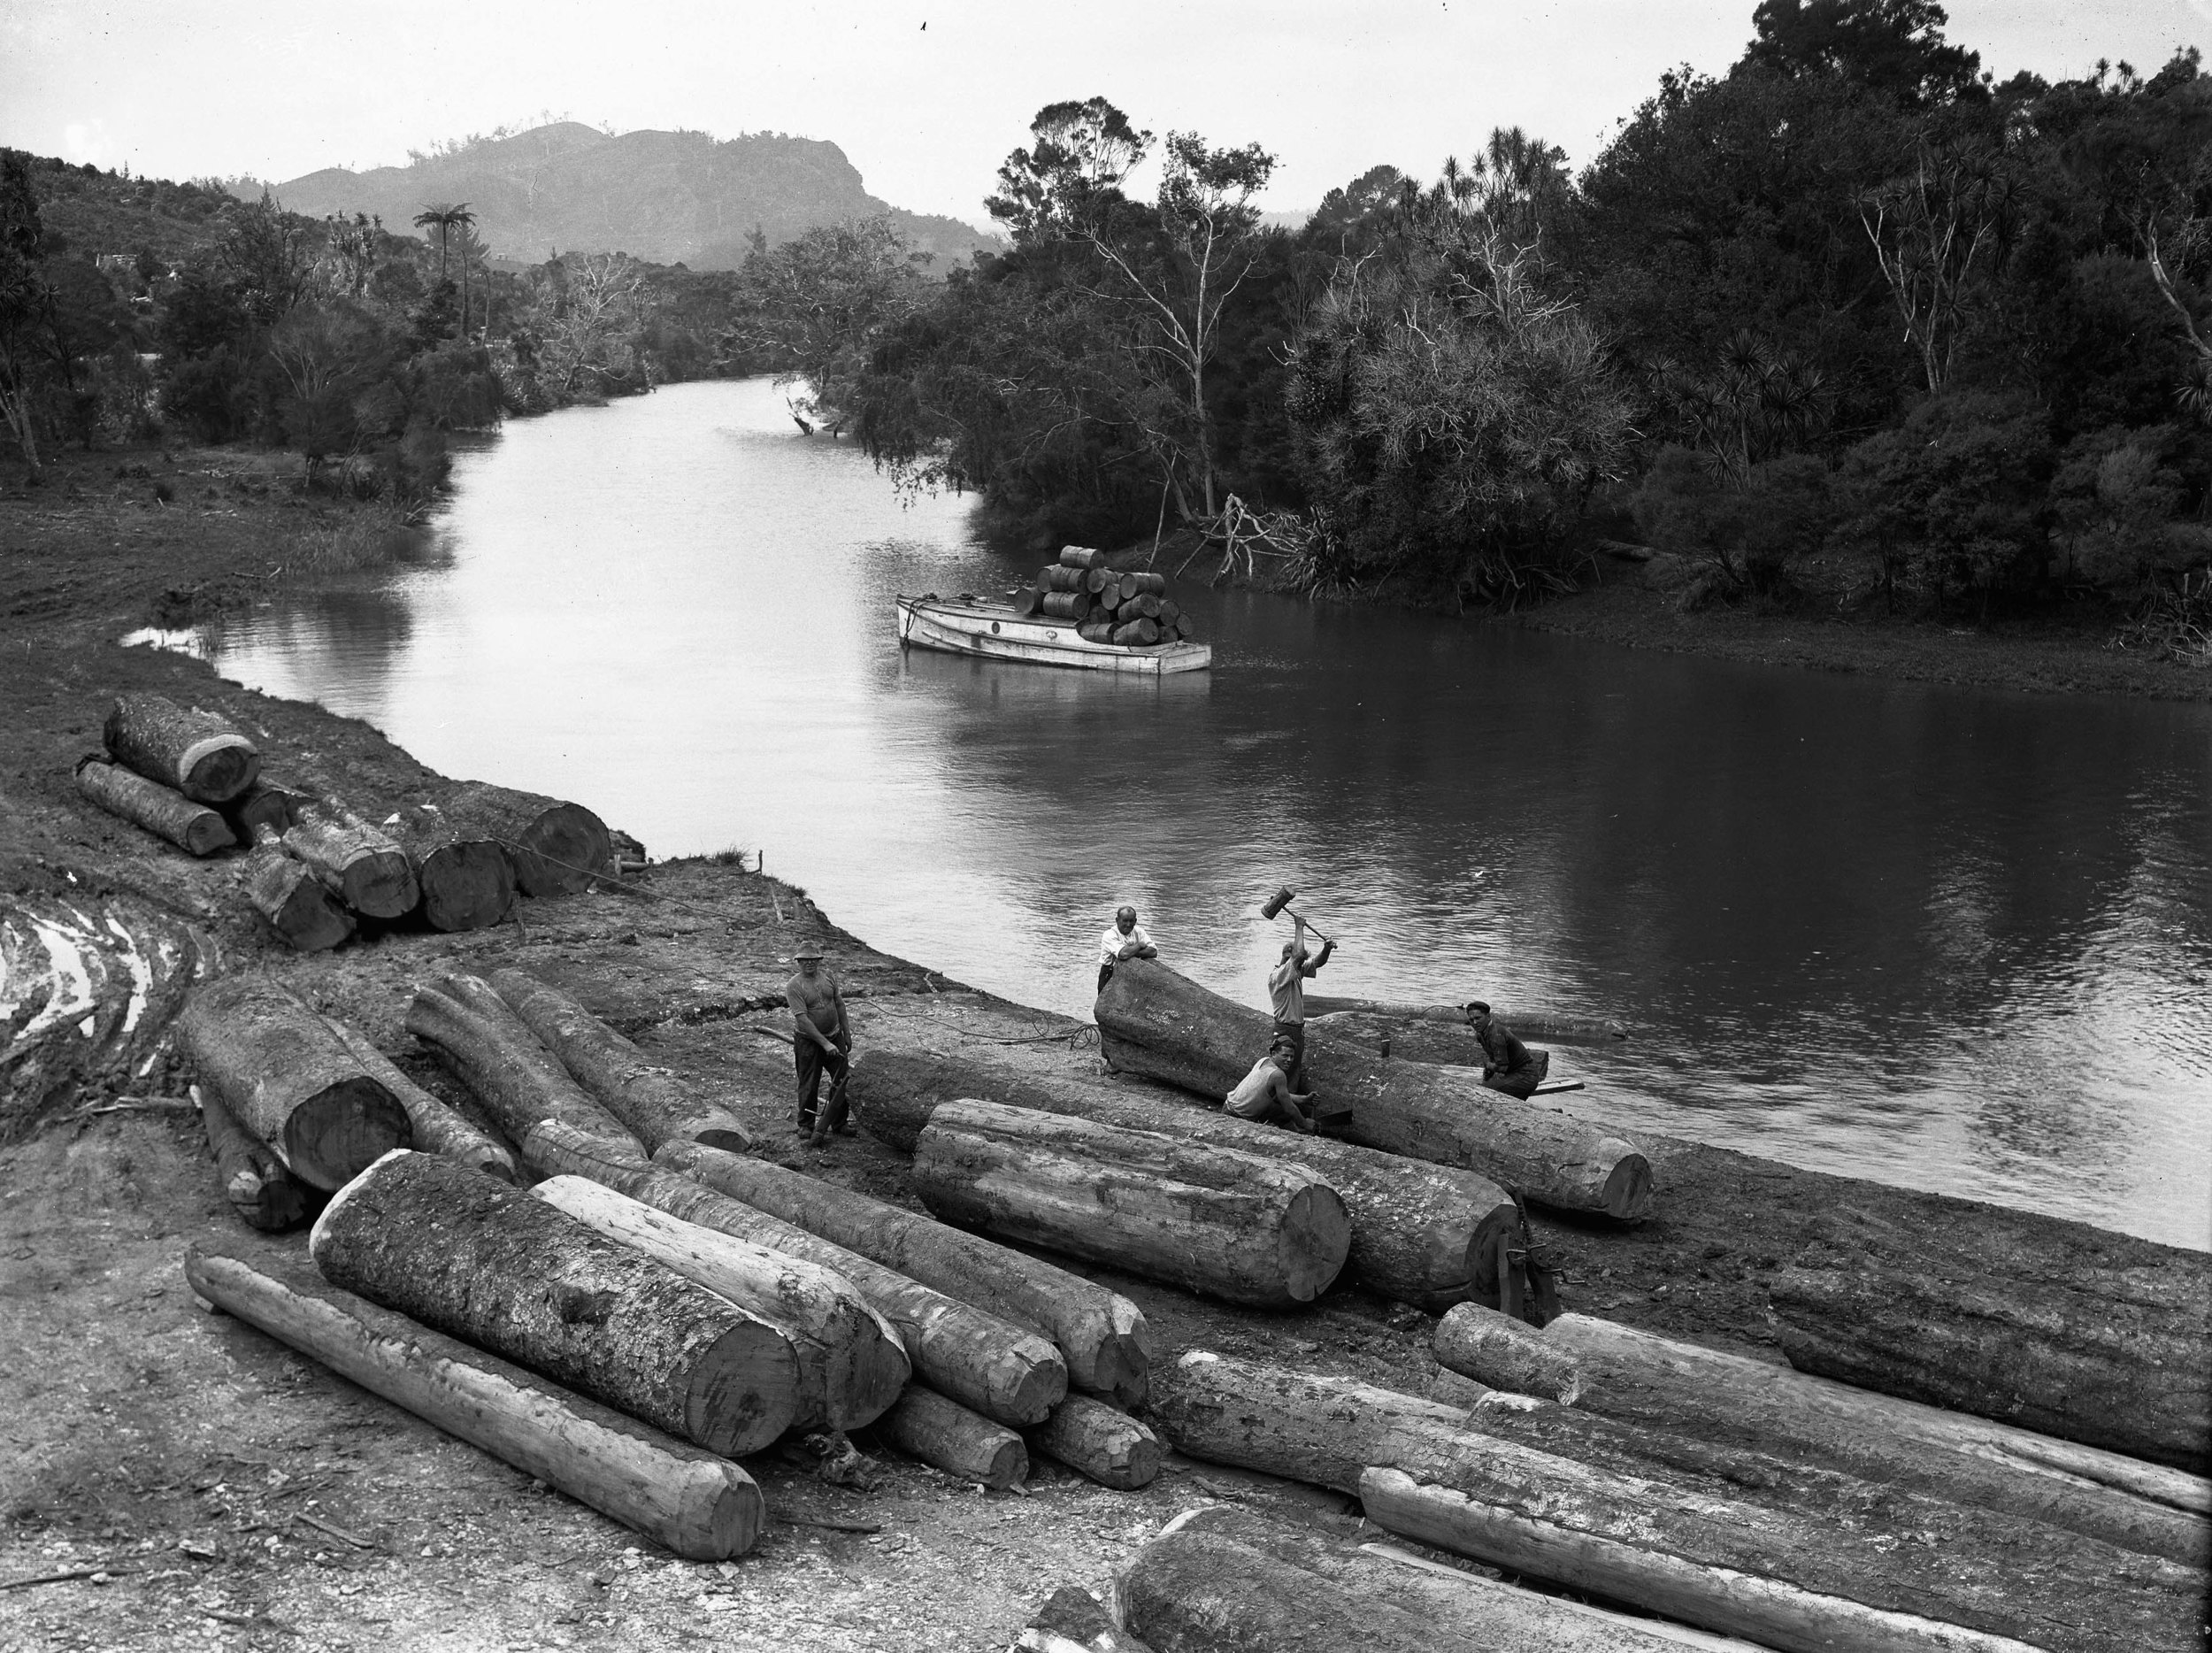 Logs ready for milling at the side of a river in the Northland area early 1900's